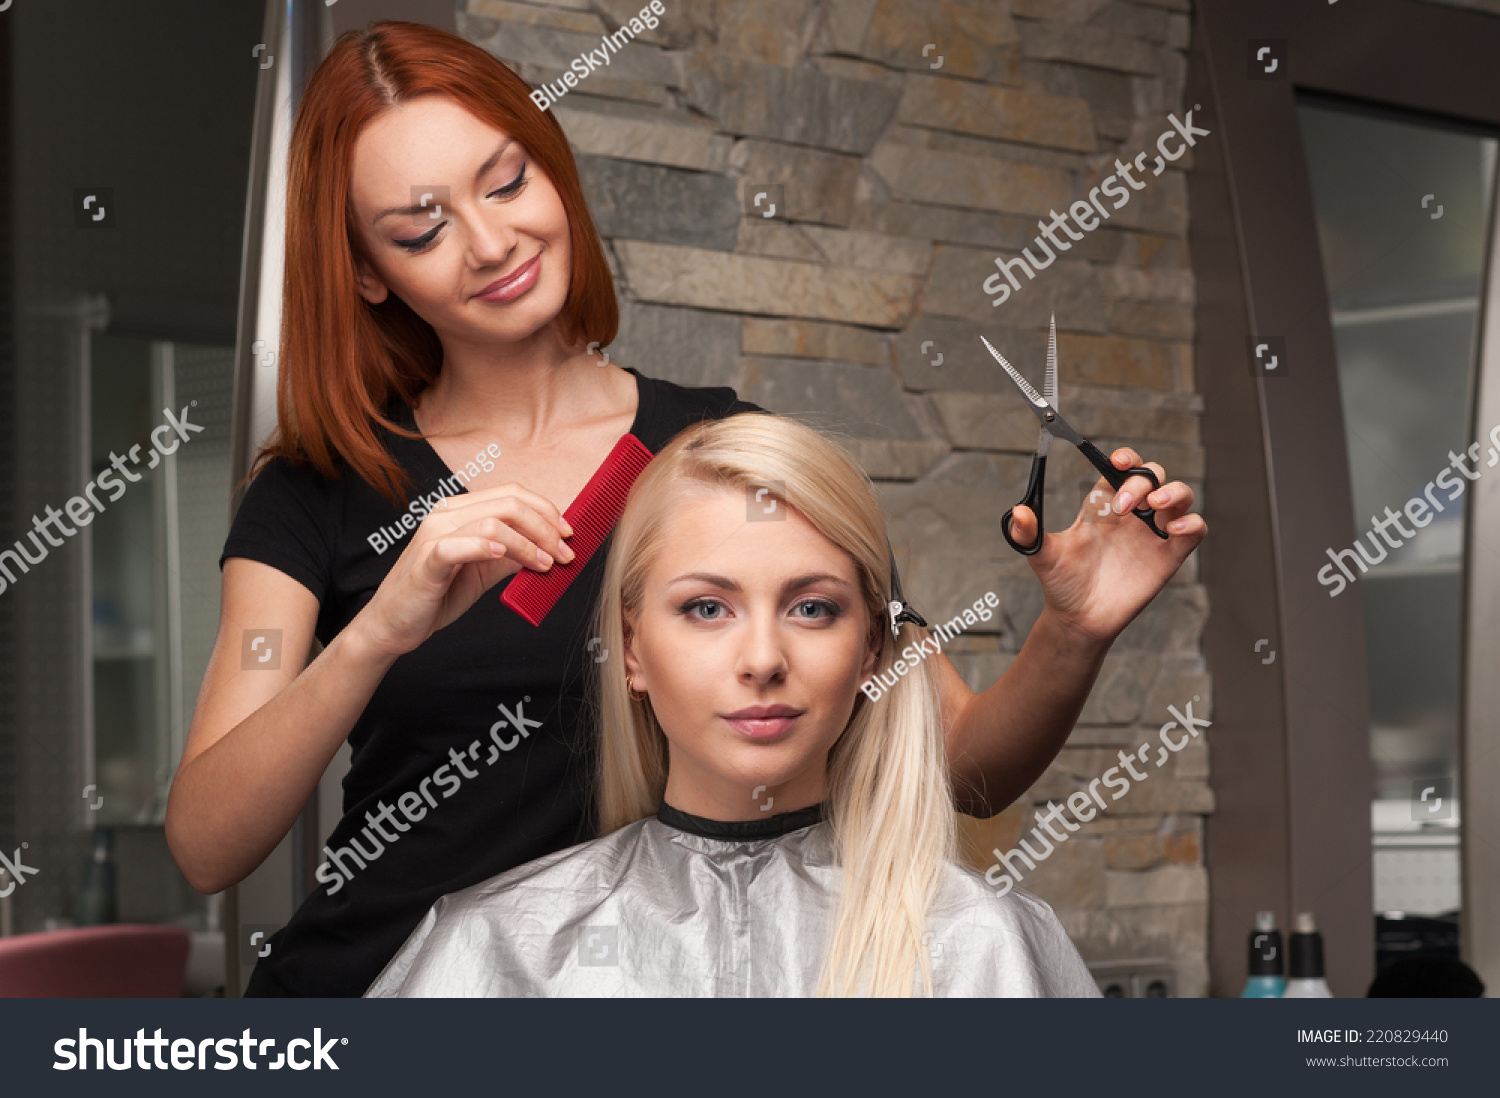 Royalty Free Happy Young Woman Getting New Haircut 220829440 Stock